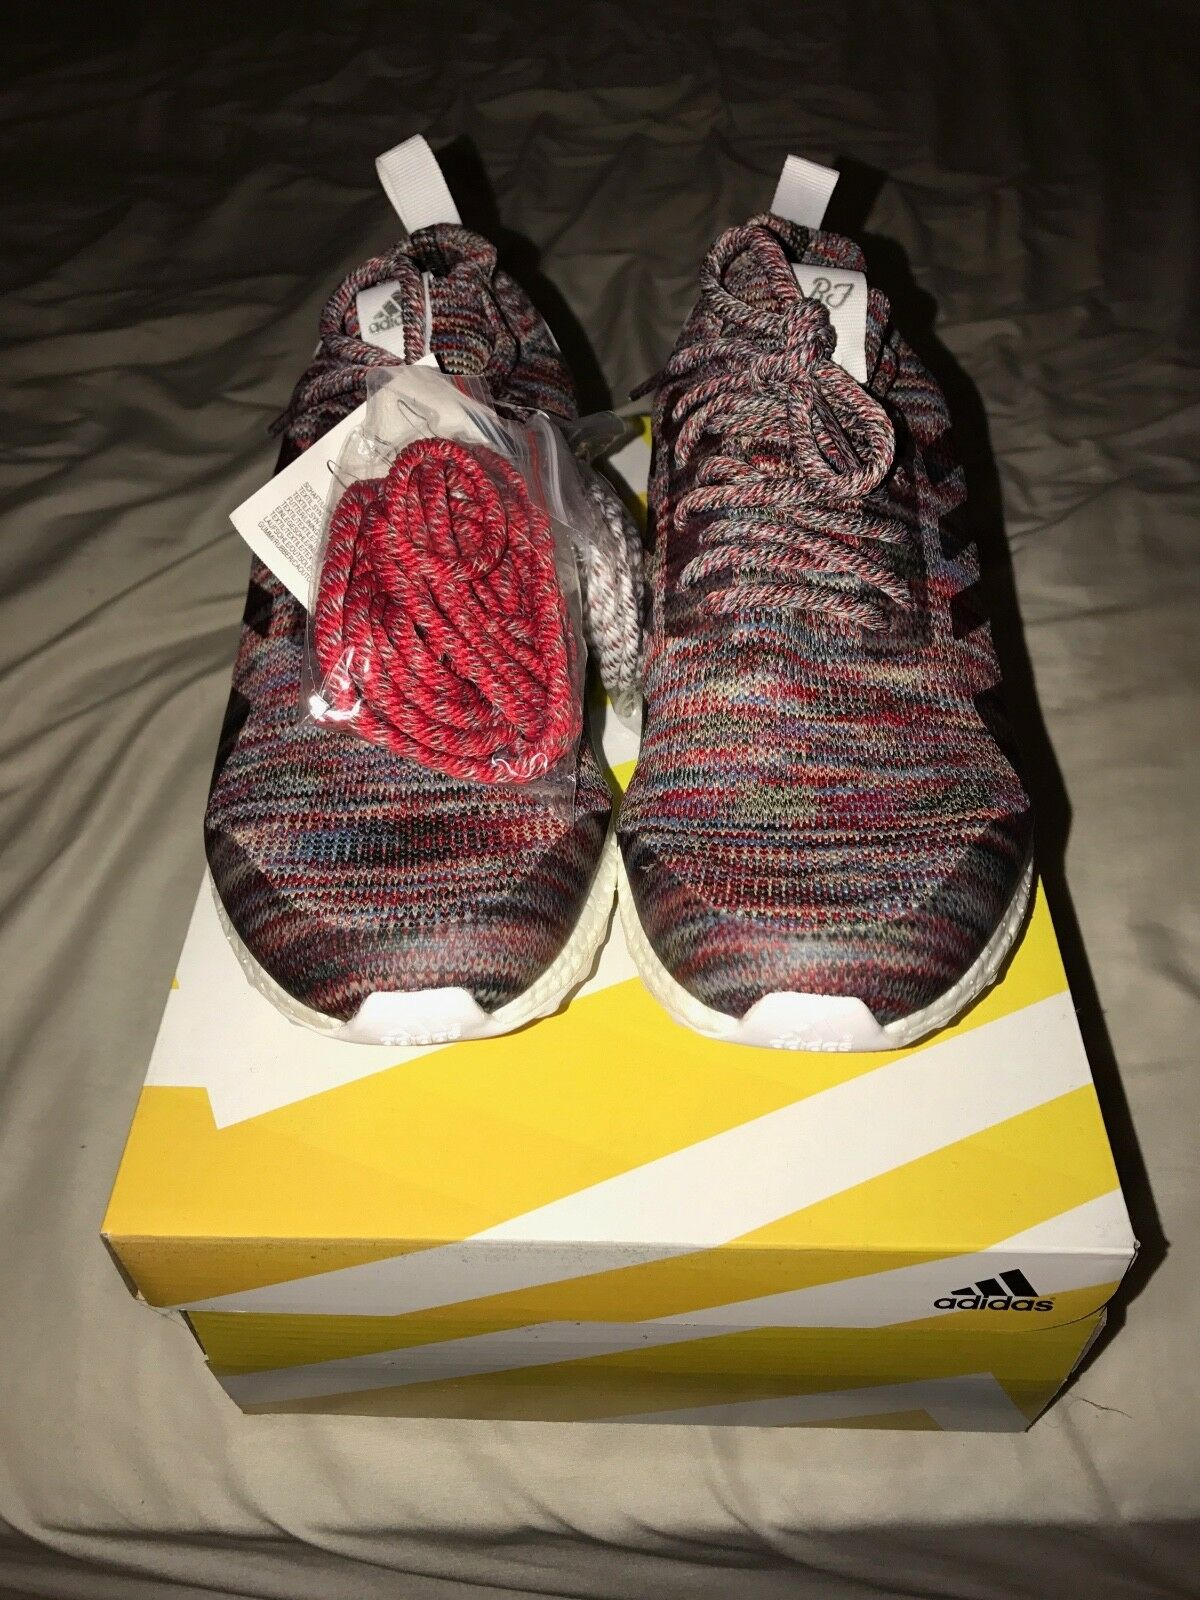 Kith x Adidas Ultraboost Mid 'Aspen' - Size Size Size 9.5 SOLD OUT 8edc5b